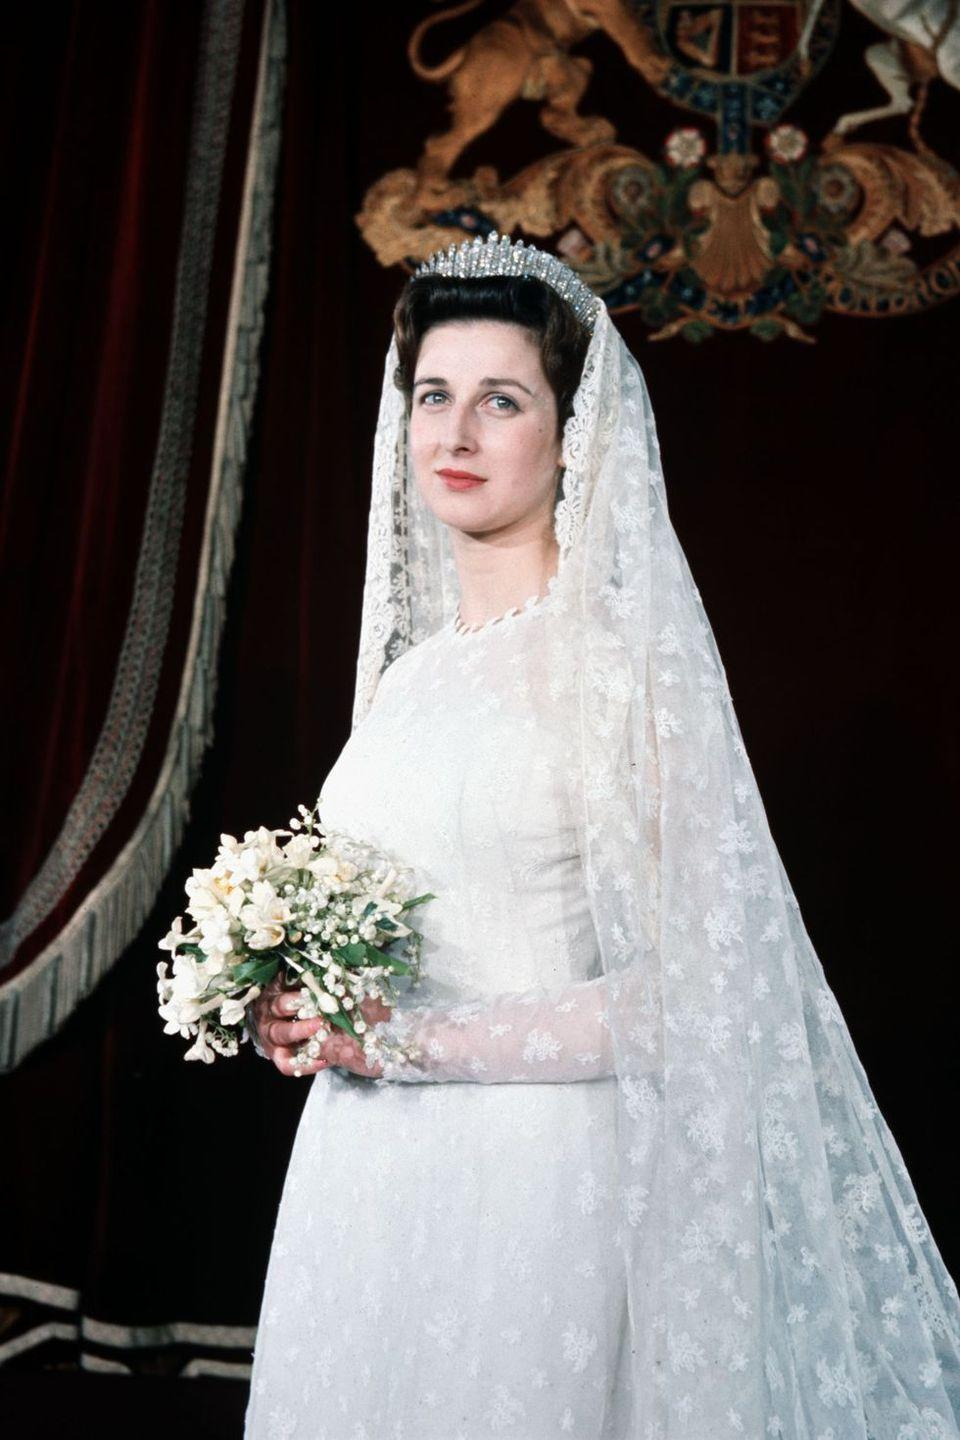 <p><strong>Wedding date: </strong>April 24, 1963</p><p><strong>Wedding tiara: </strong>Princess Alexandra of Kent wore the Kent City of London Fringe tiara on her wedding day, which she borrowed from her mother Princess Marina. The stunning tiara was given to Marina, on her wedding day in 1934.</p>